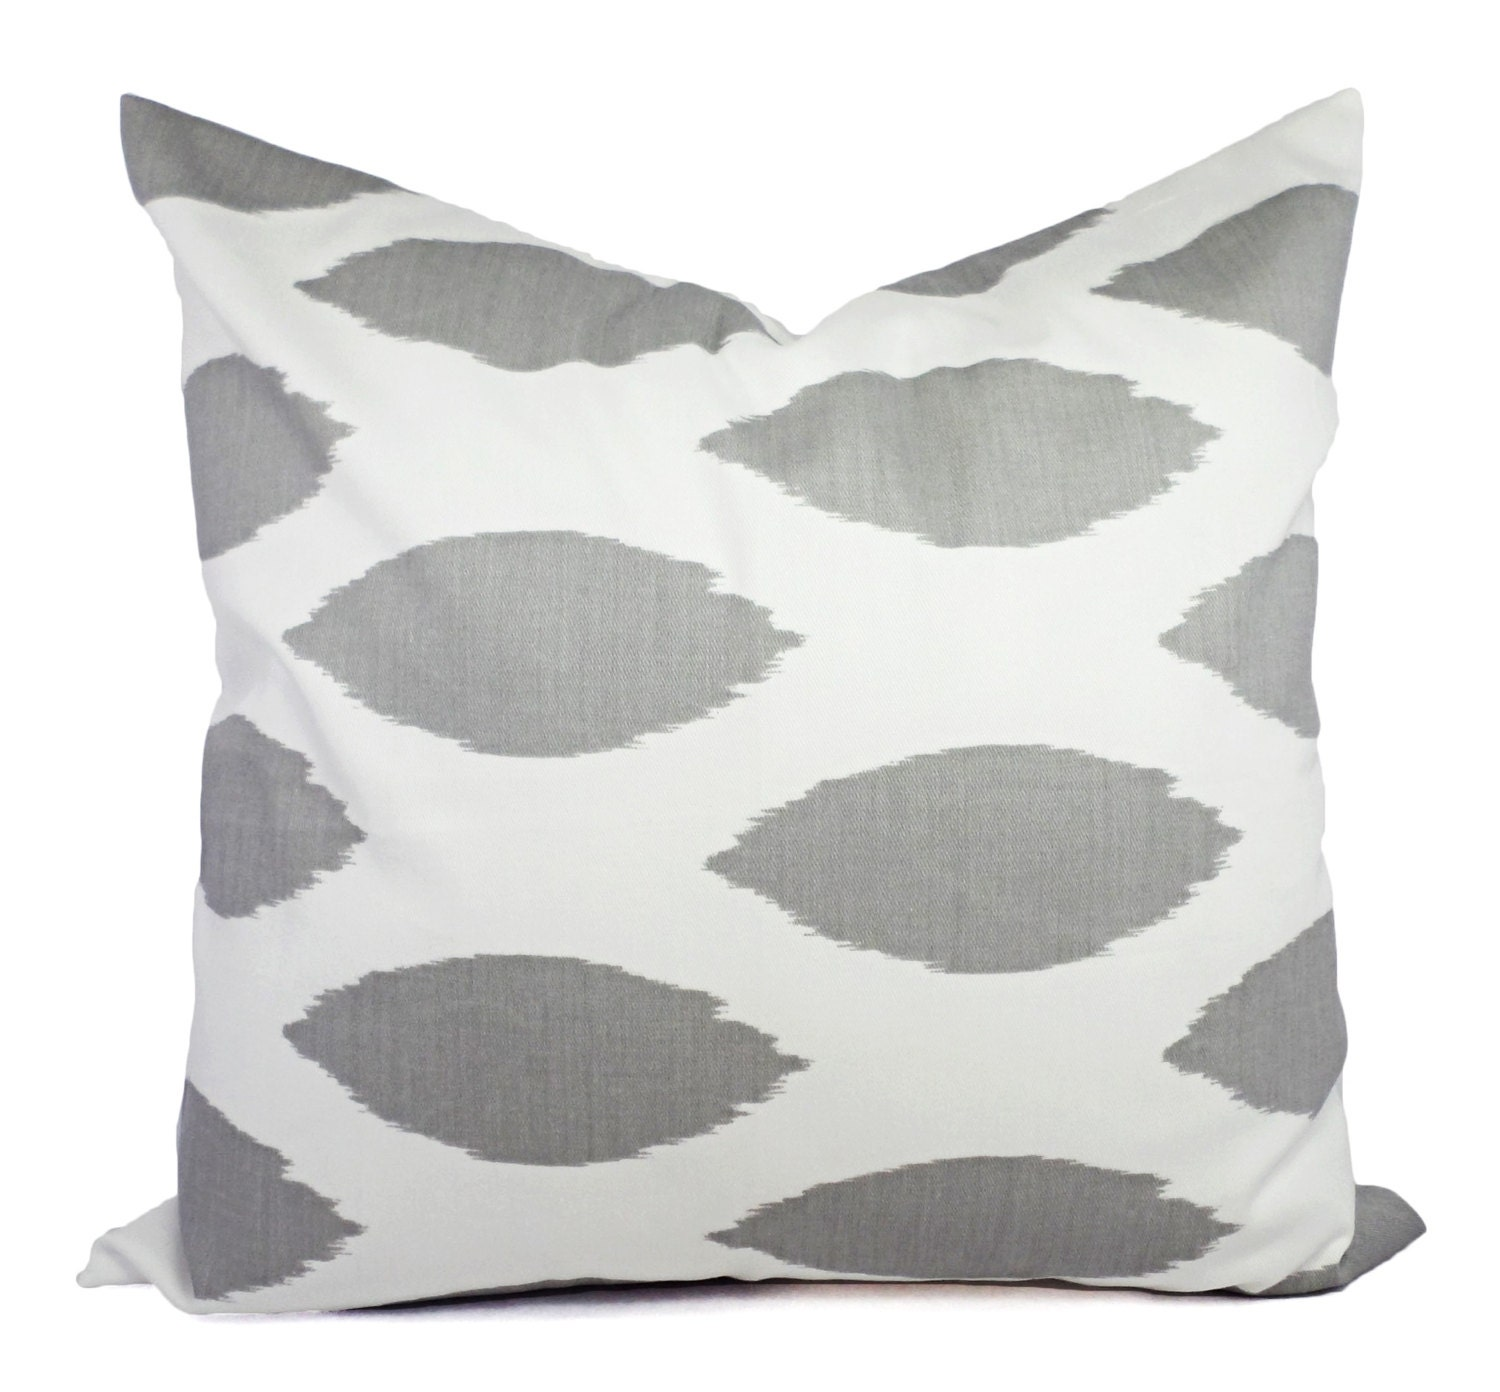 Two Decorative Throw Pillow Covers Grey and White Ikat Print